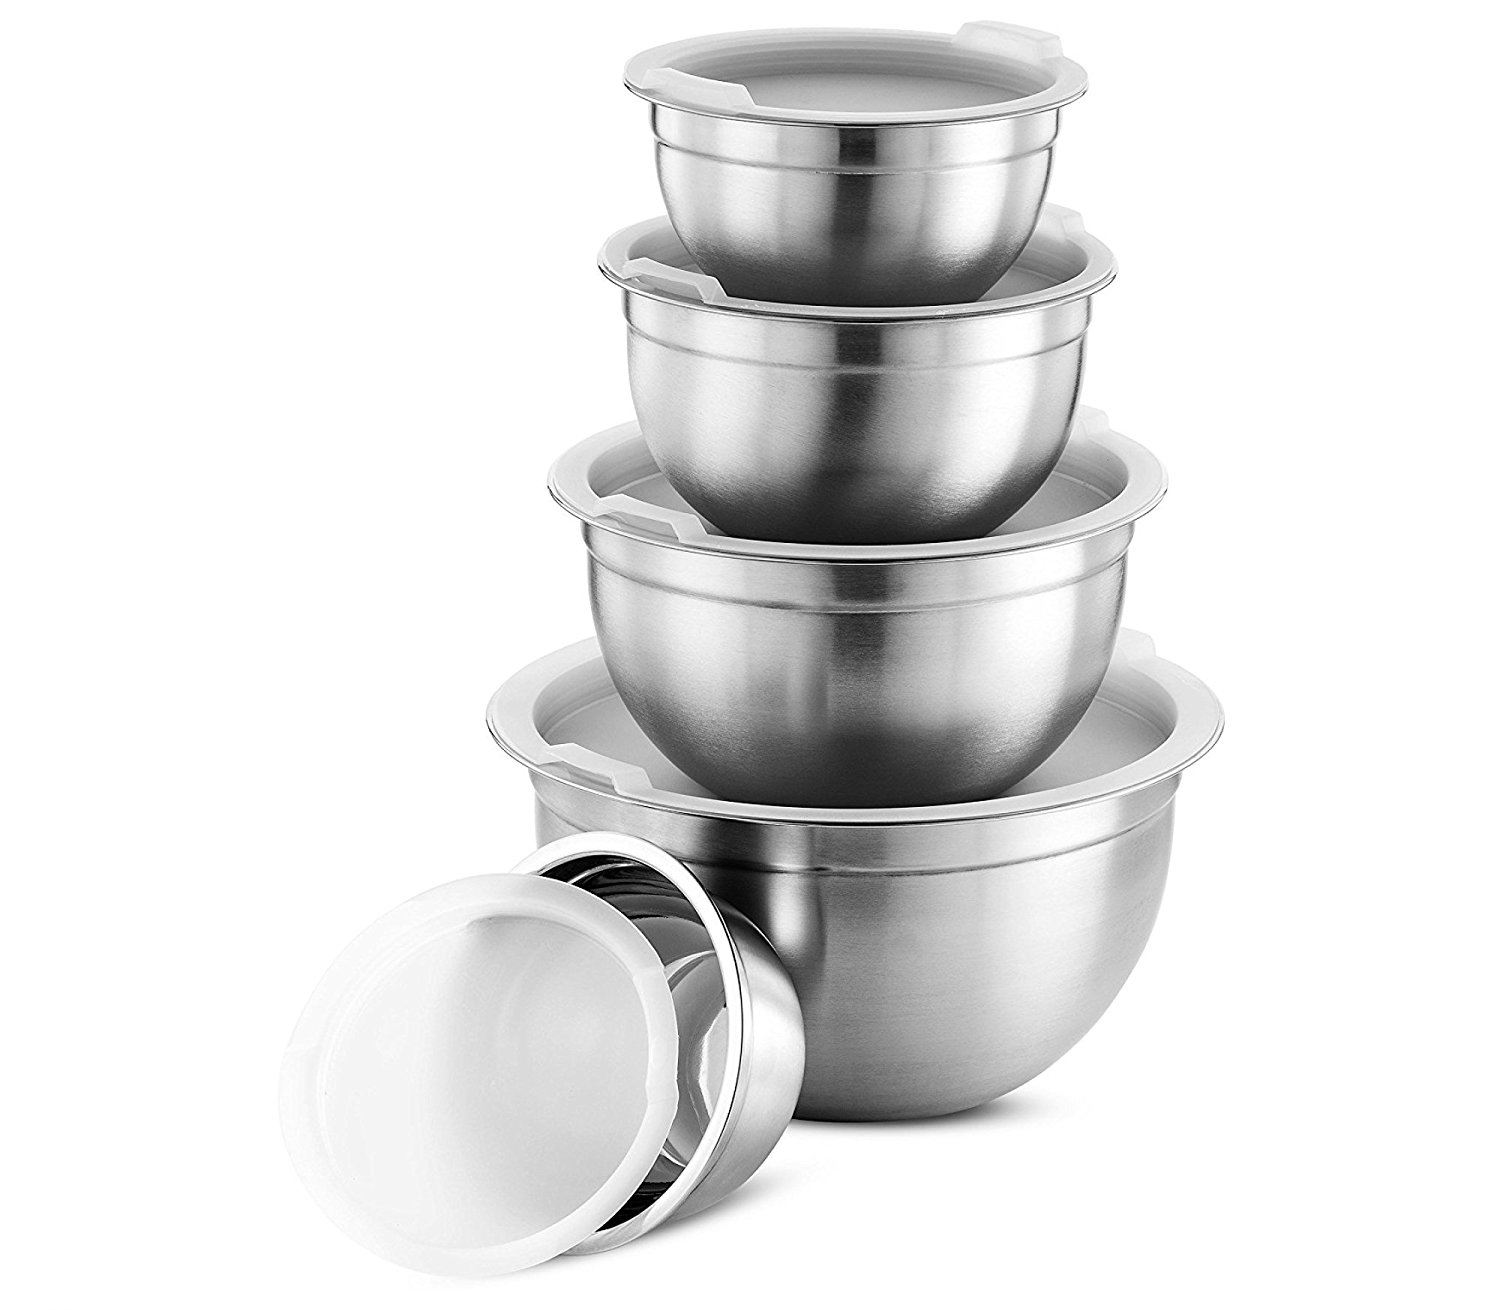 Hot sale matte finish kitchen accessories stainless steel serving bowl set with lid